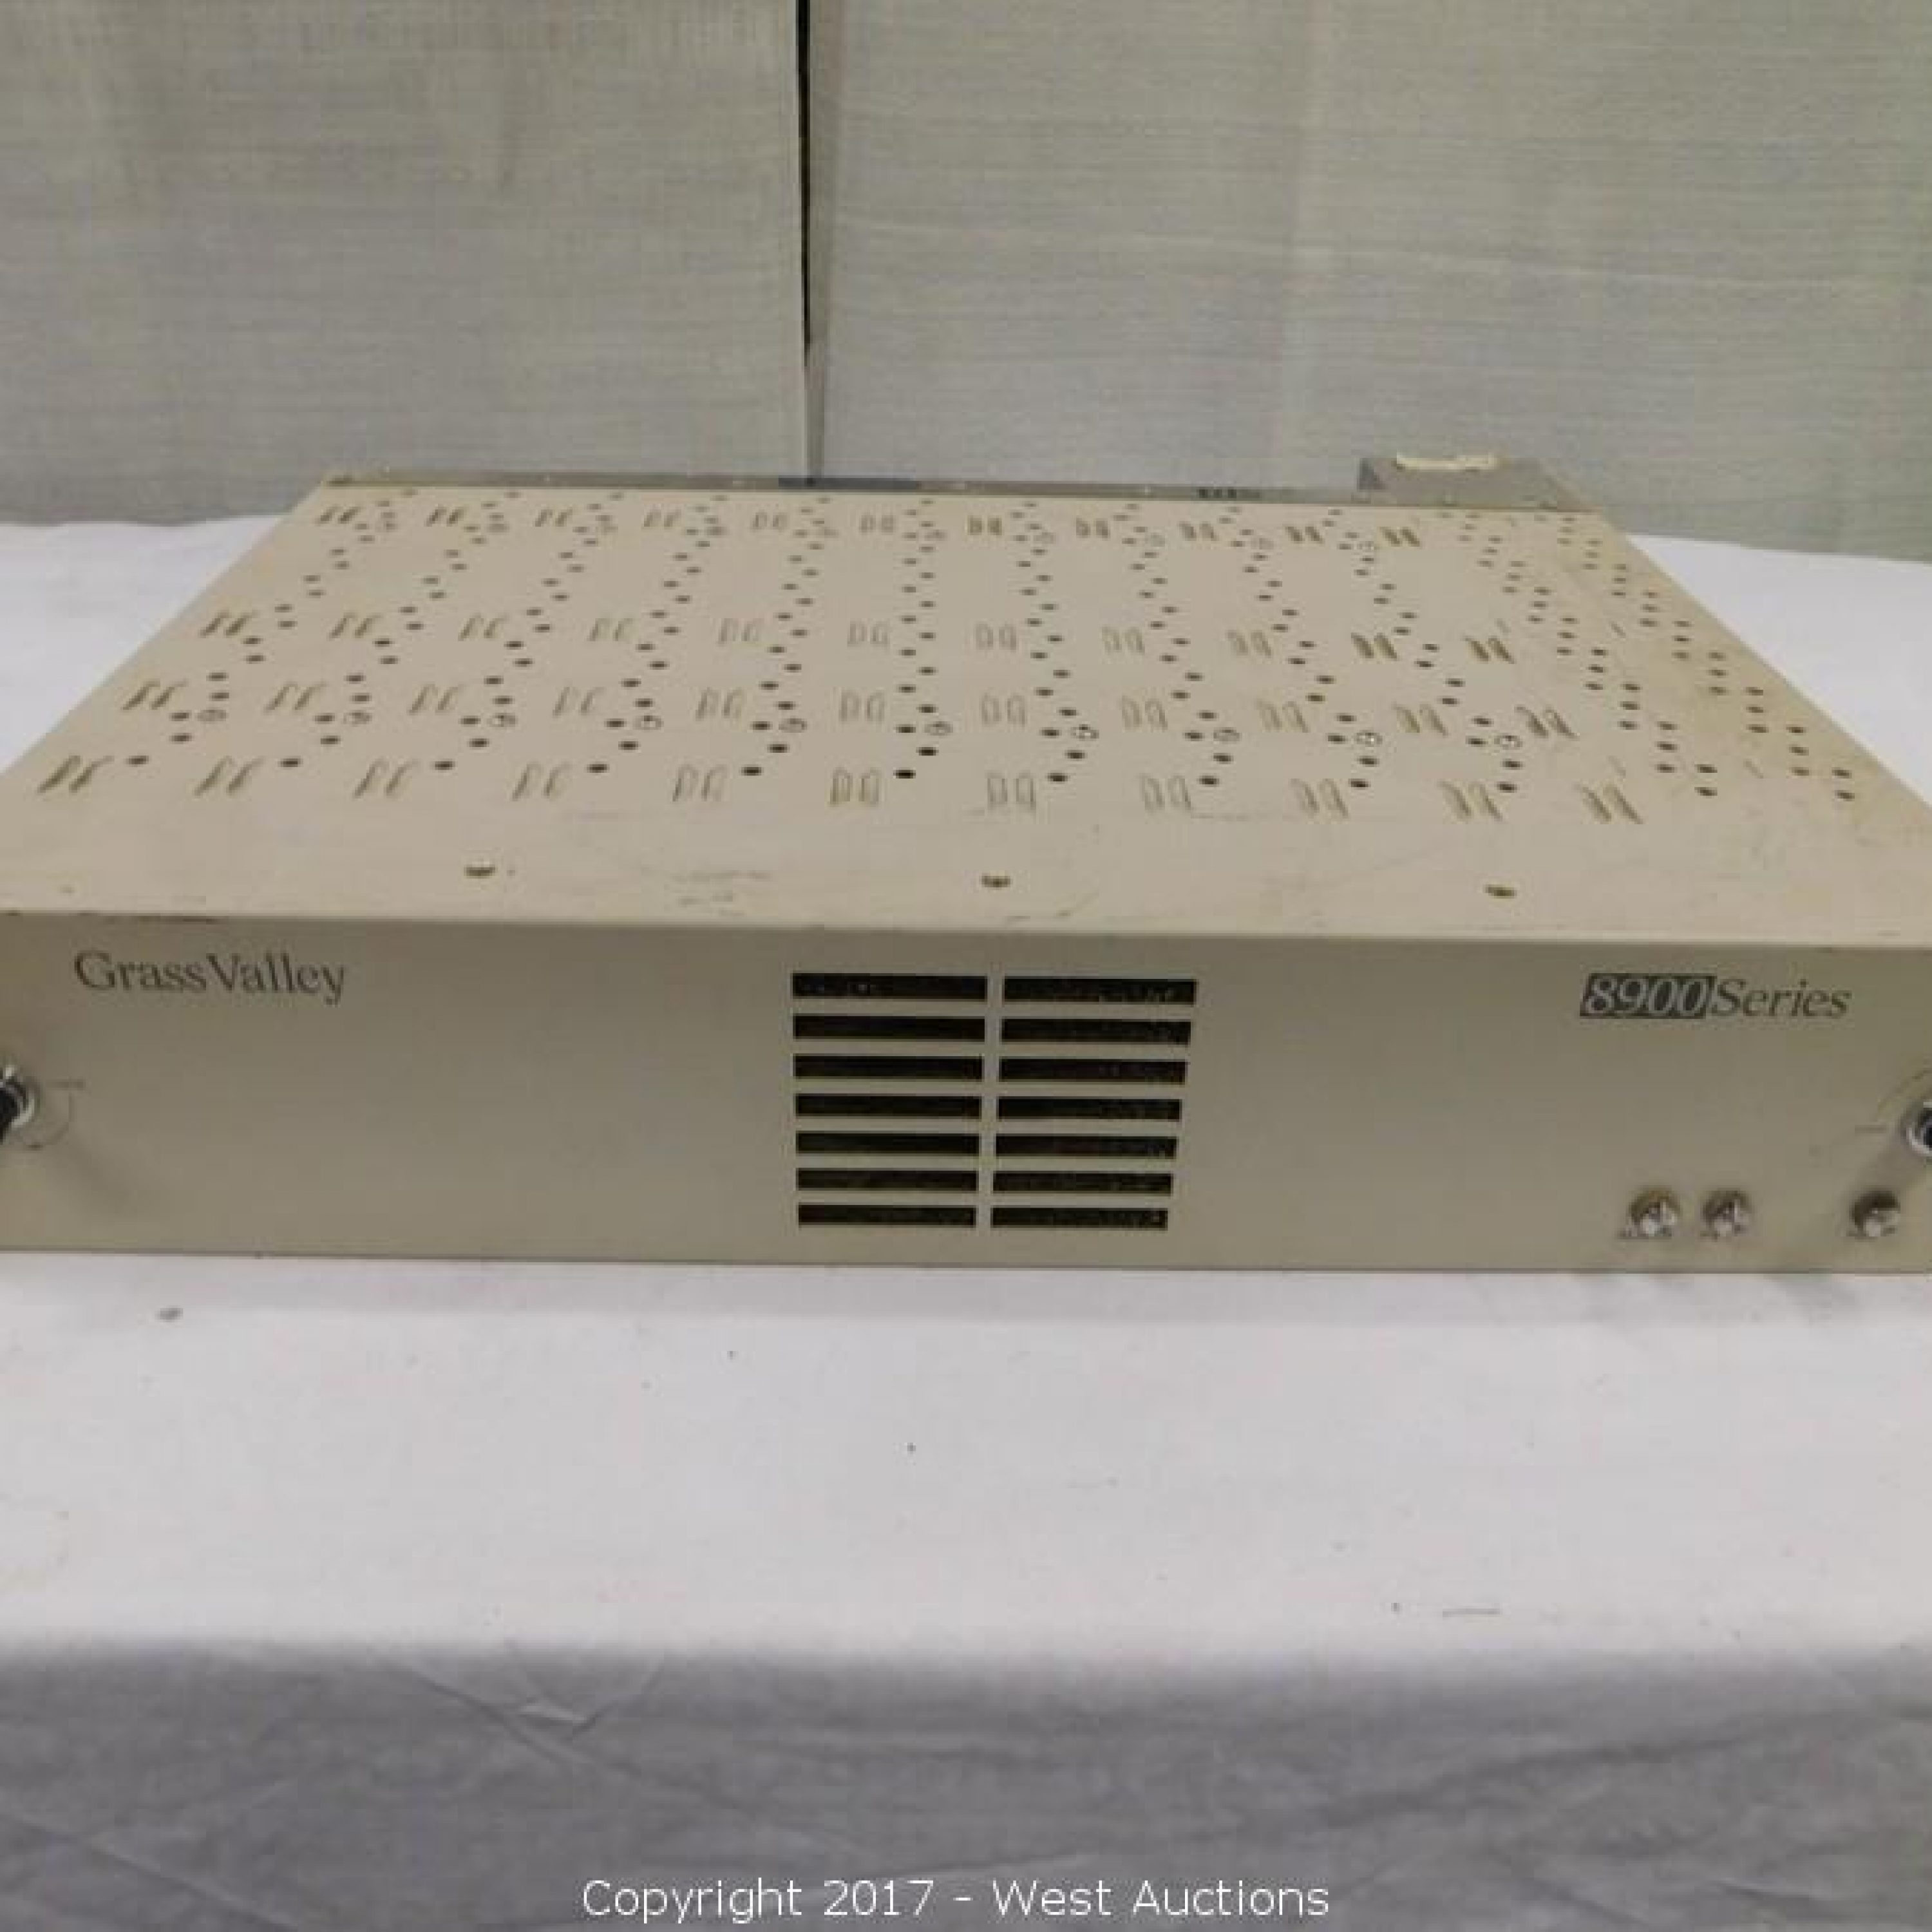 Grass Valley 8900 Series Video Distribution Frame